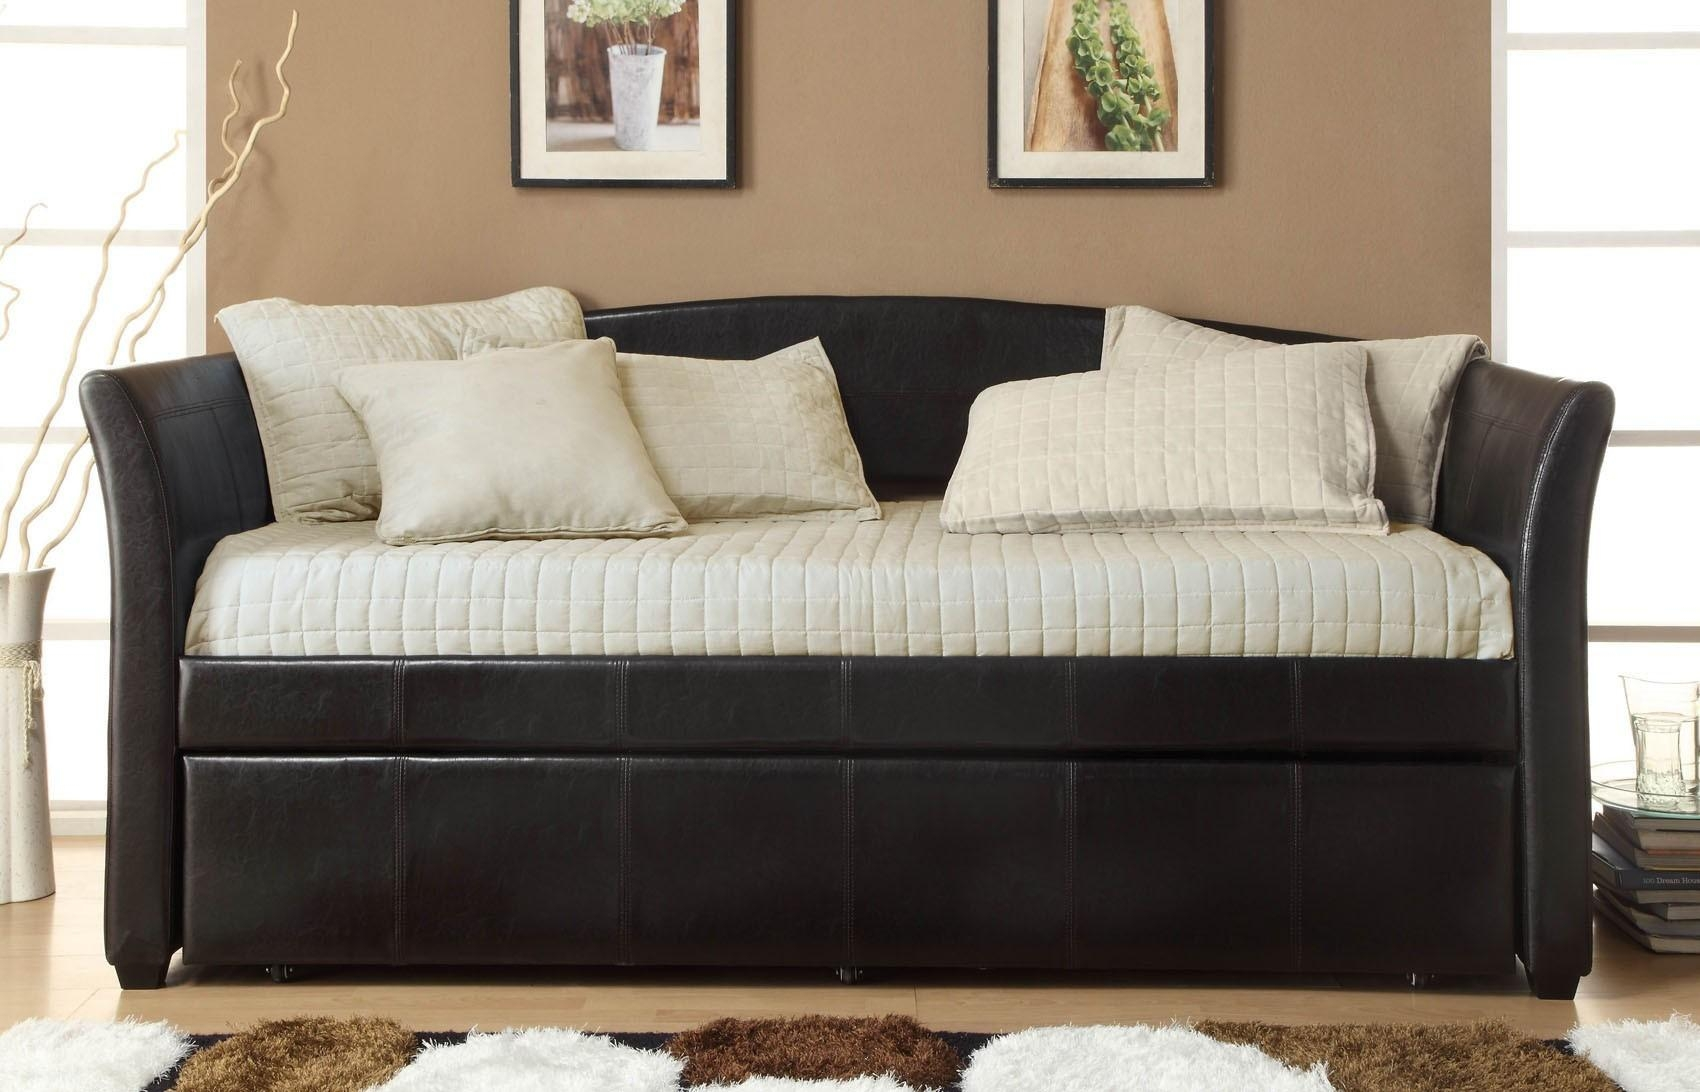 bedroom sofa bed what is the most comfortable sectional or daybed daybeds best couch ideas